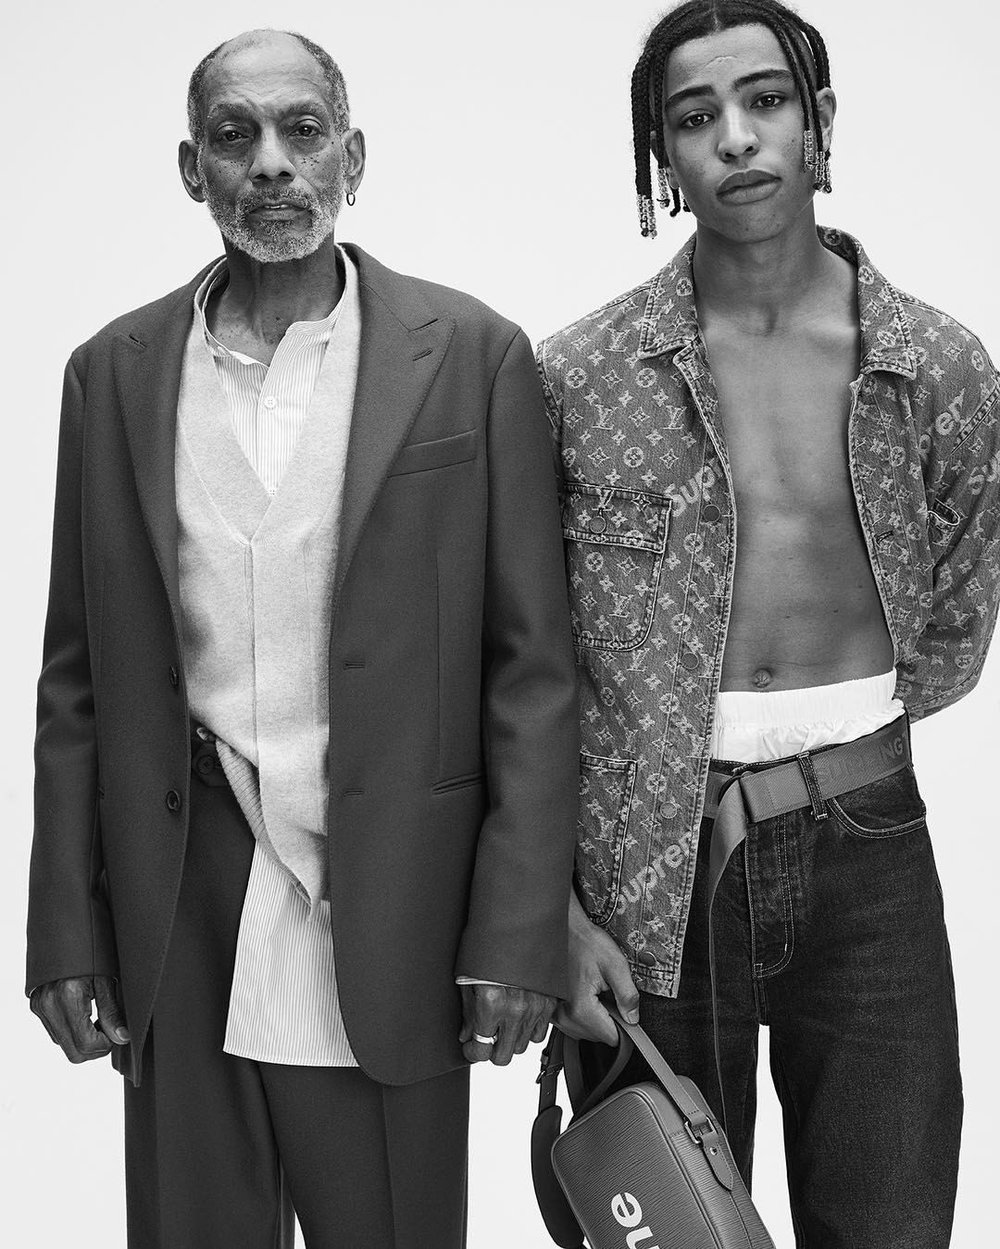 (RIGHT) MODEL WEARS FW17 STRAIGHT CHOP JEAN IN DARK 501